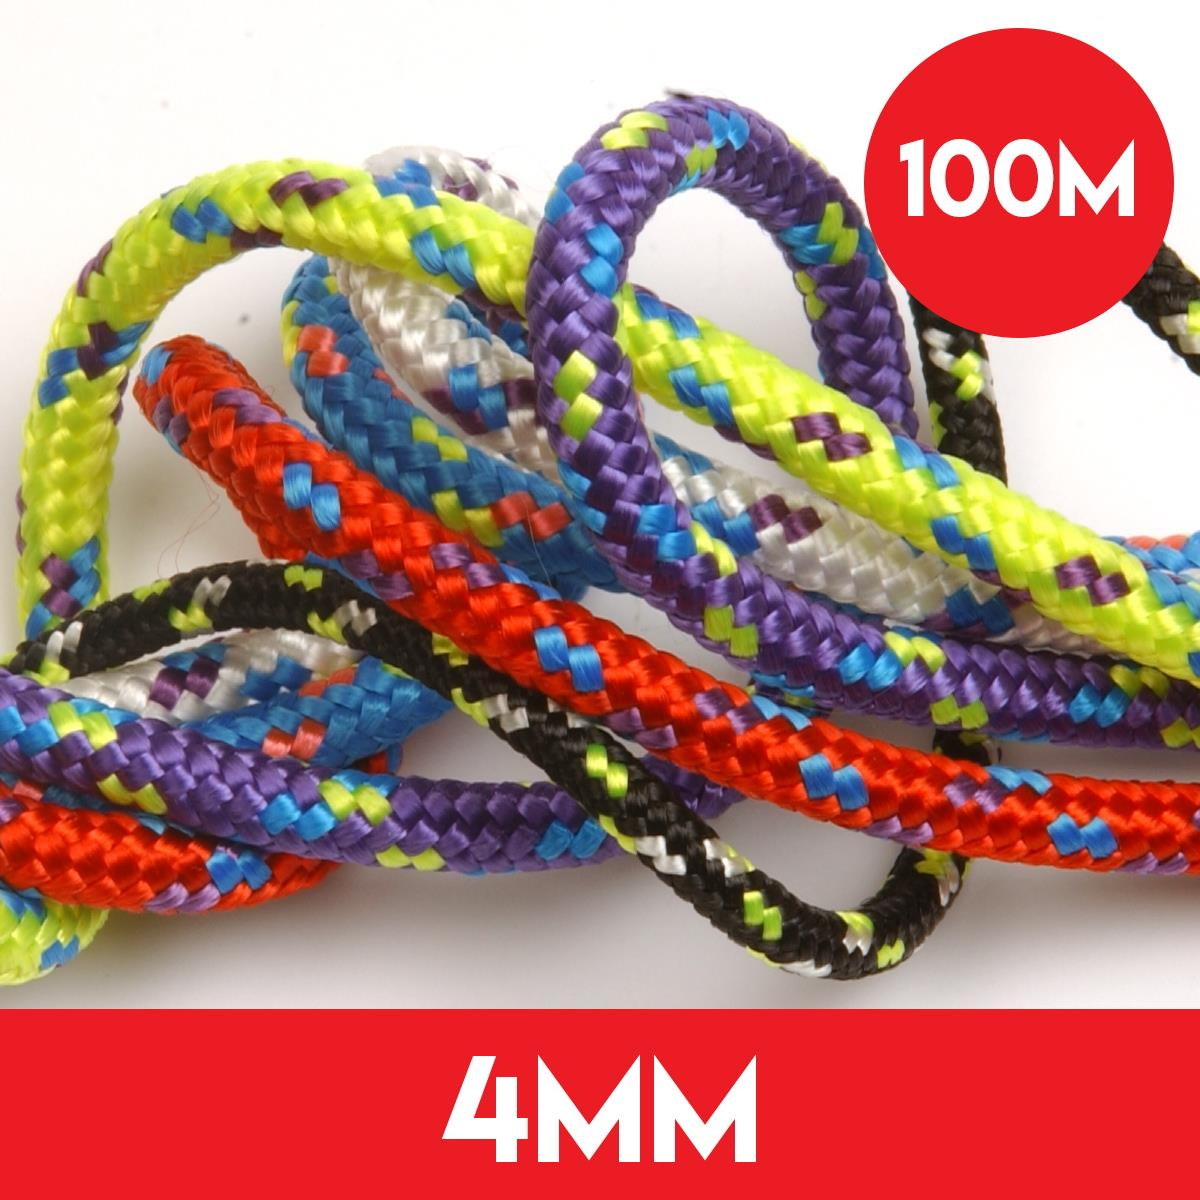 100m Reel of 4mm Kingfisher Evolution Performance Rope